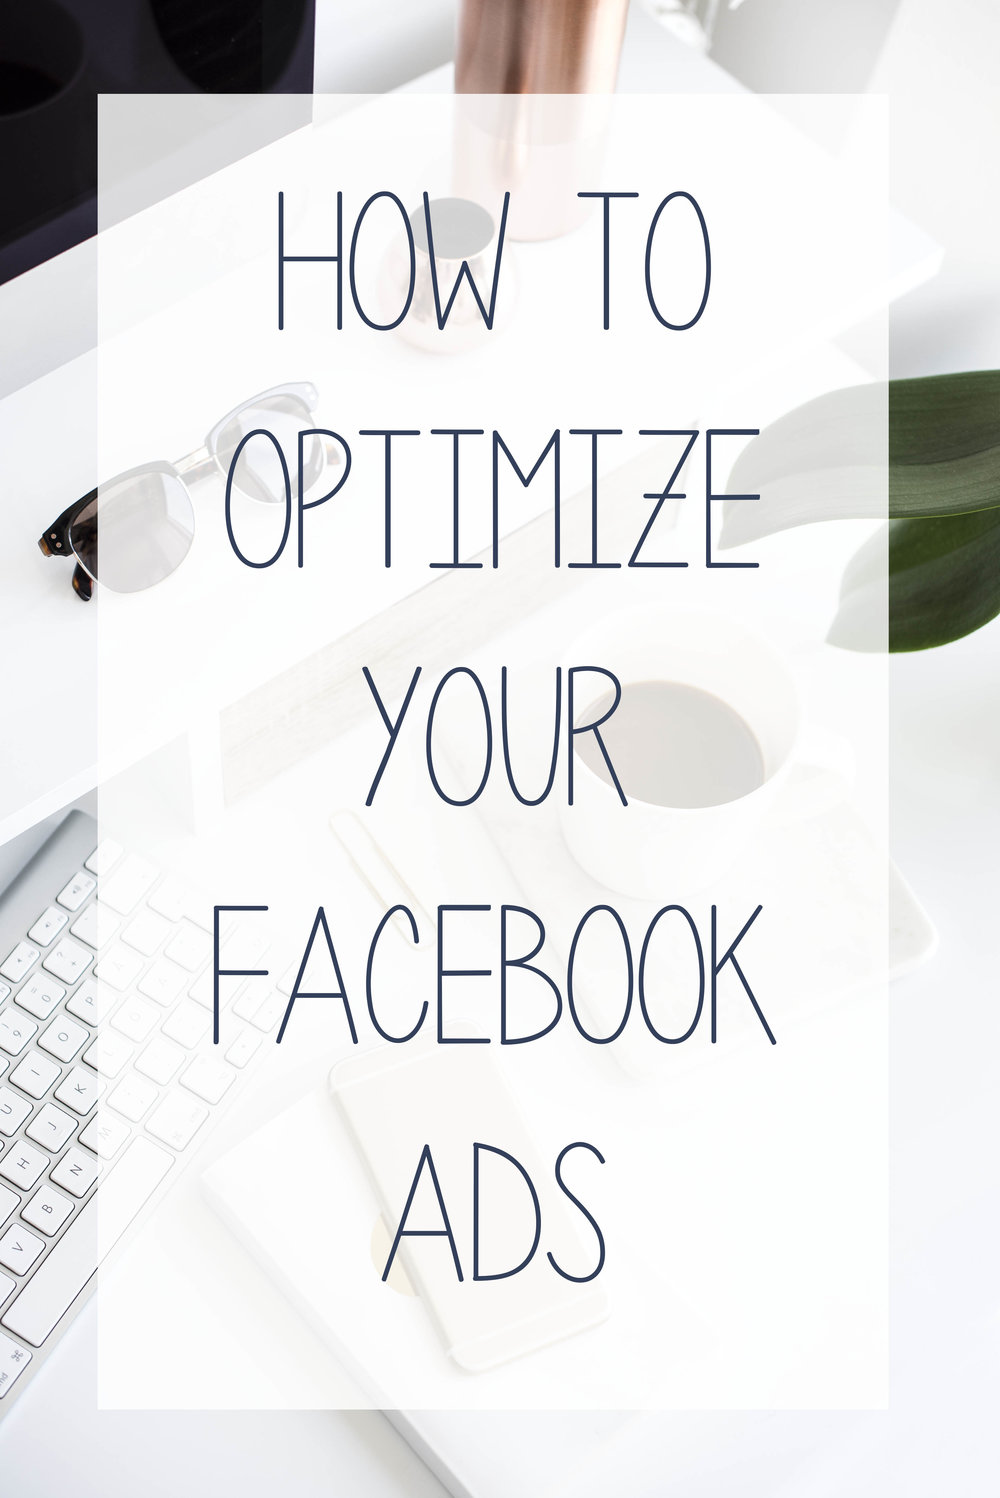 Learn Hub Digital's quick tips on how to optimize your facebook ads.